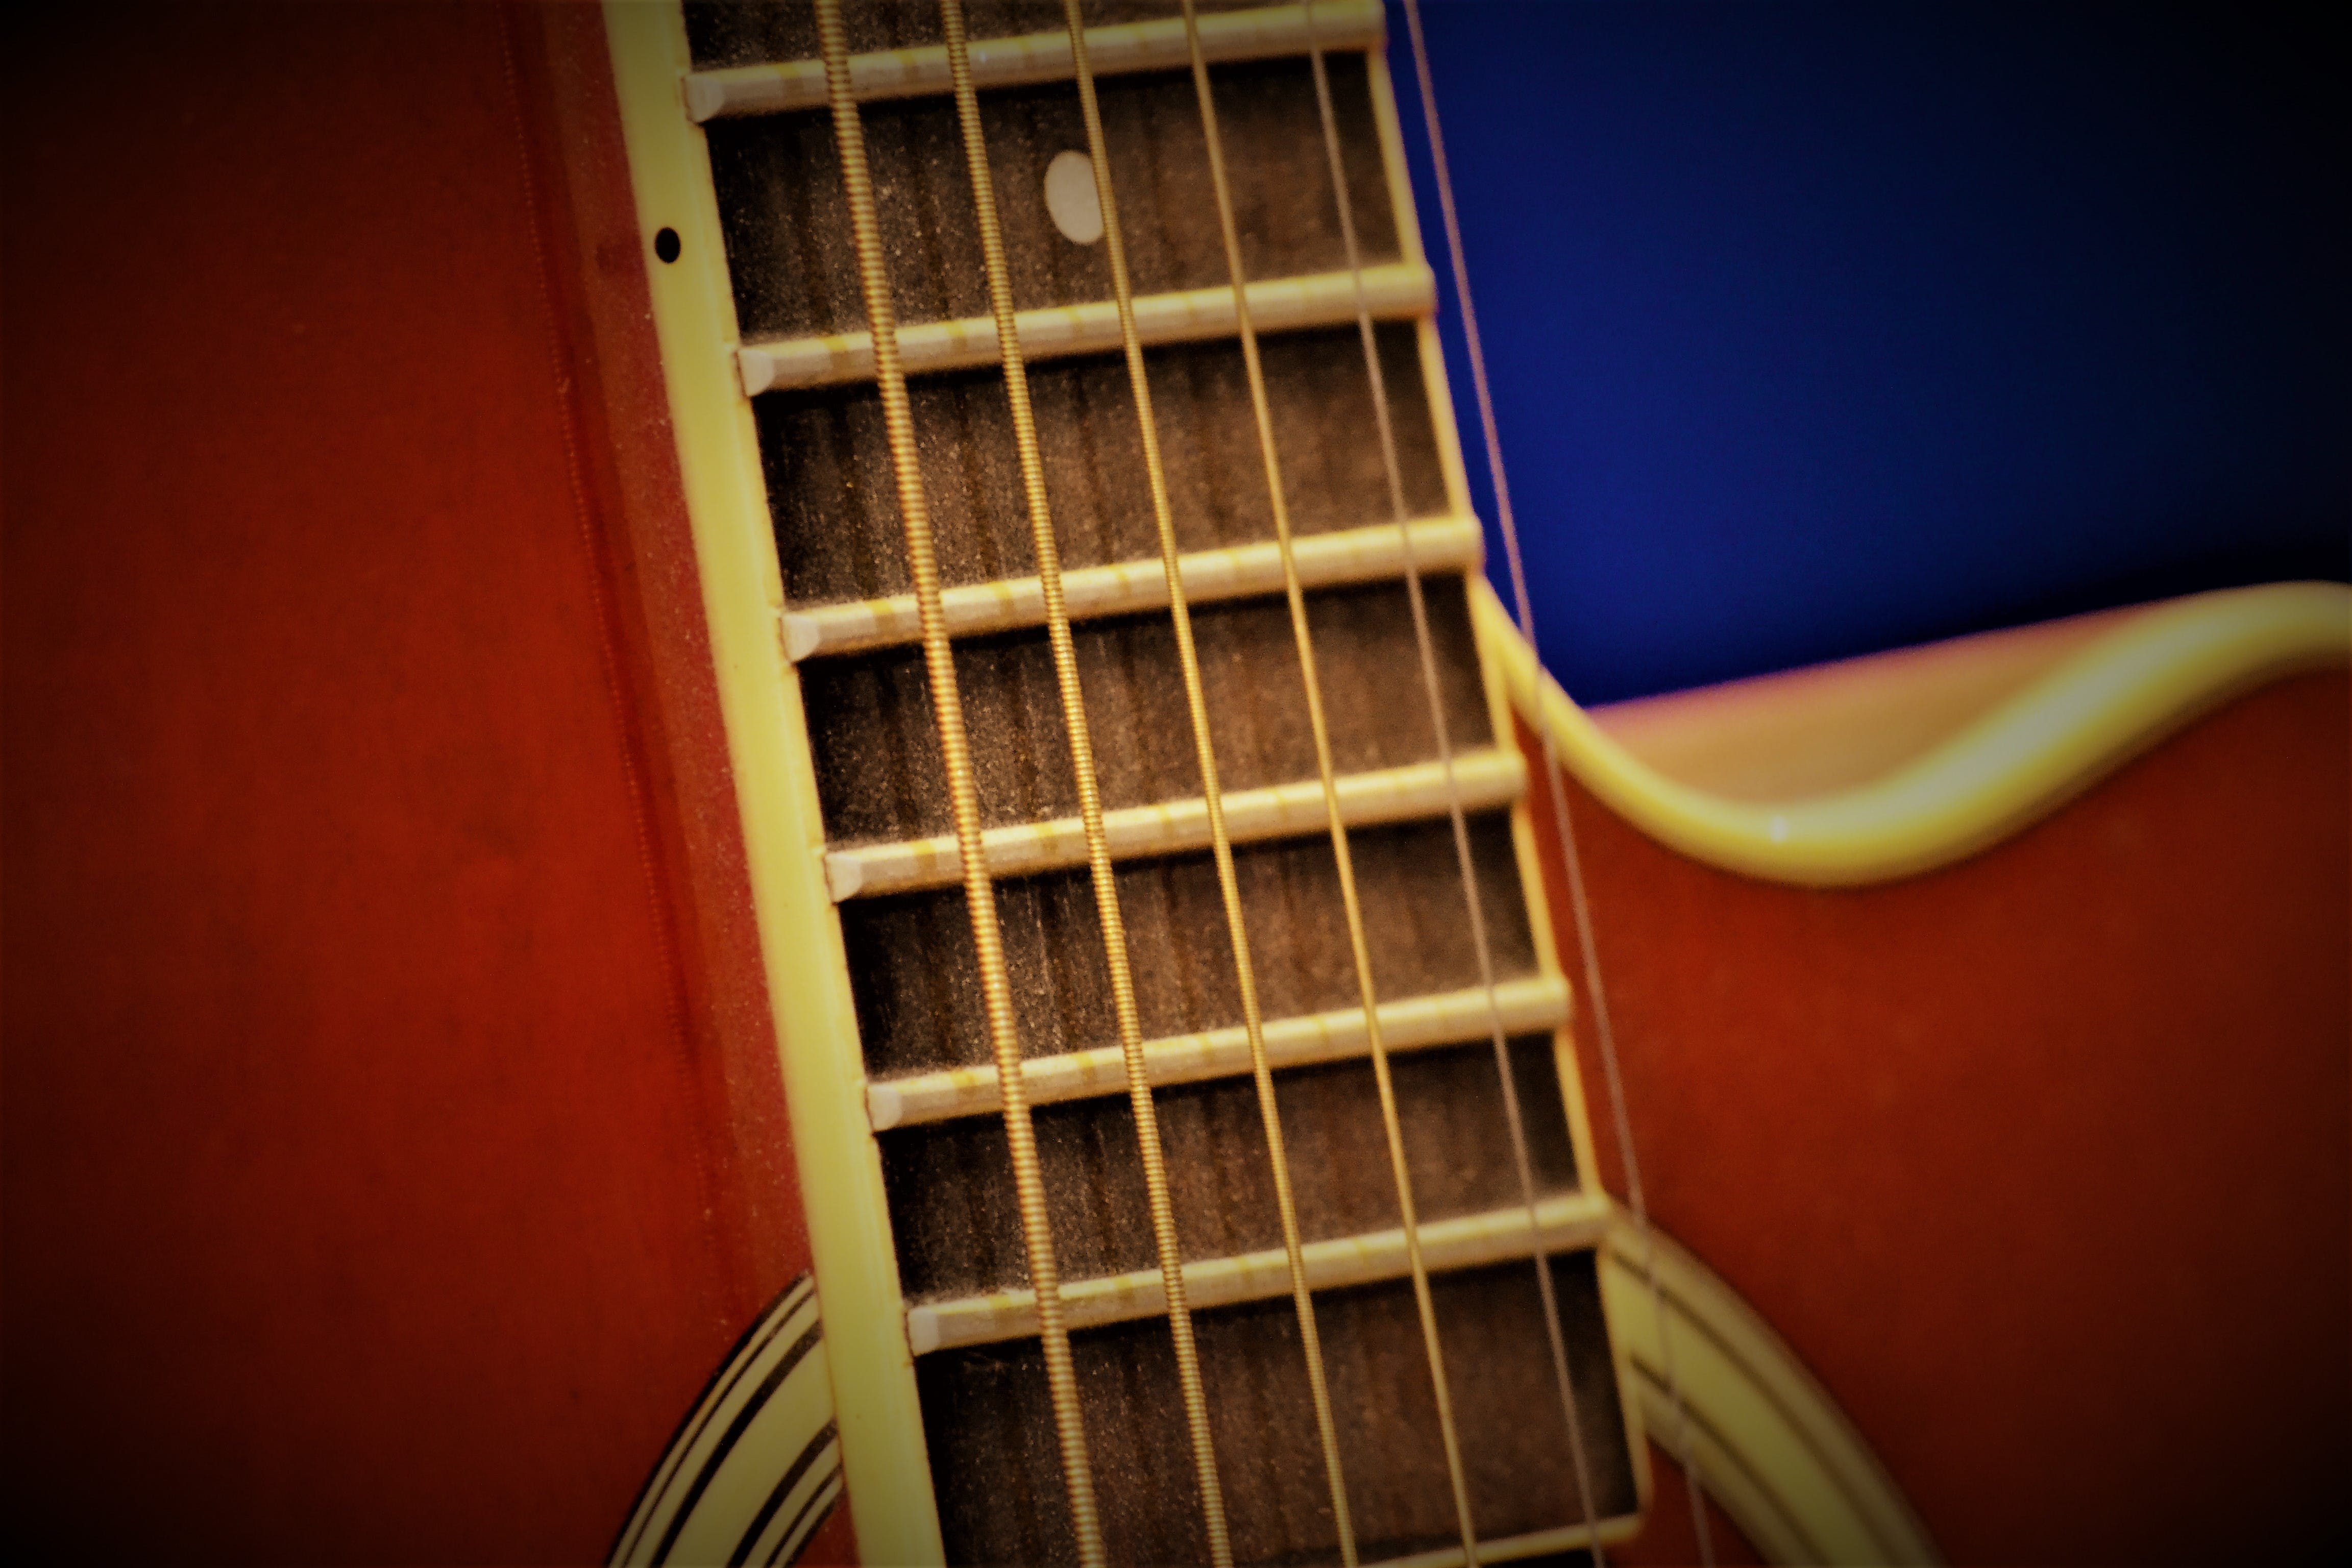 Free stock photo of acoustic guitar, guitar strings